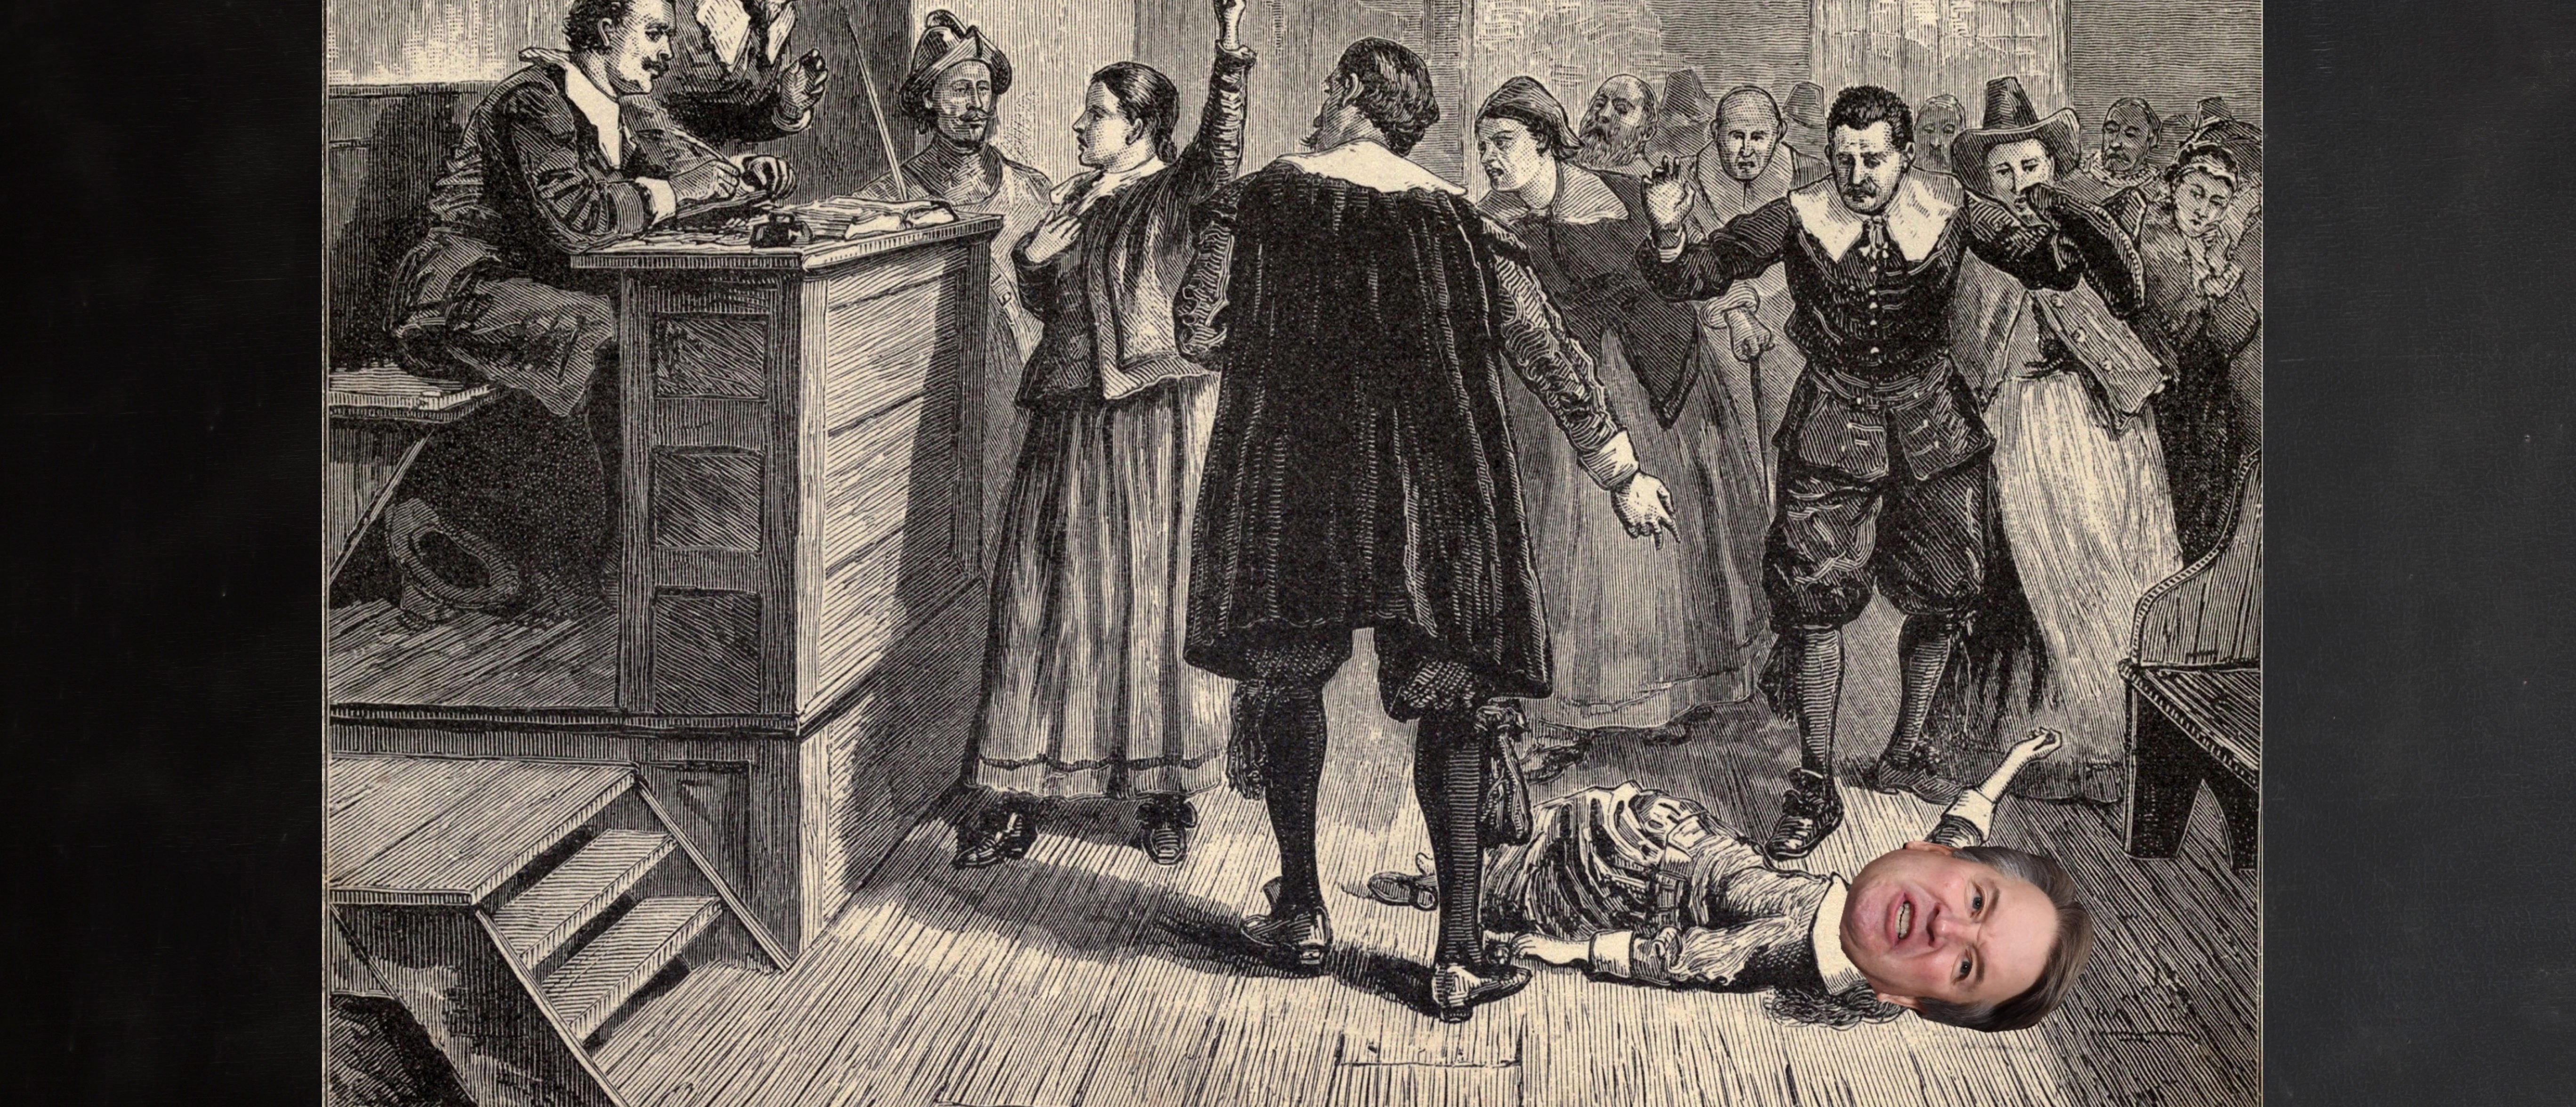 OPINION: Kavanaugh And The Return Of The Salem Witch Trials, Shutterstock and Getty Images